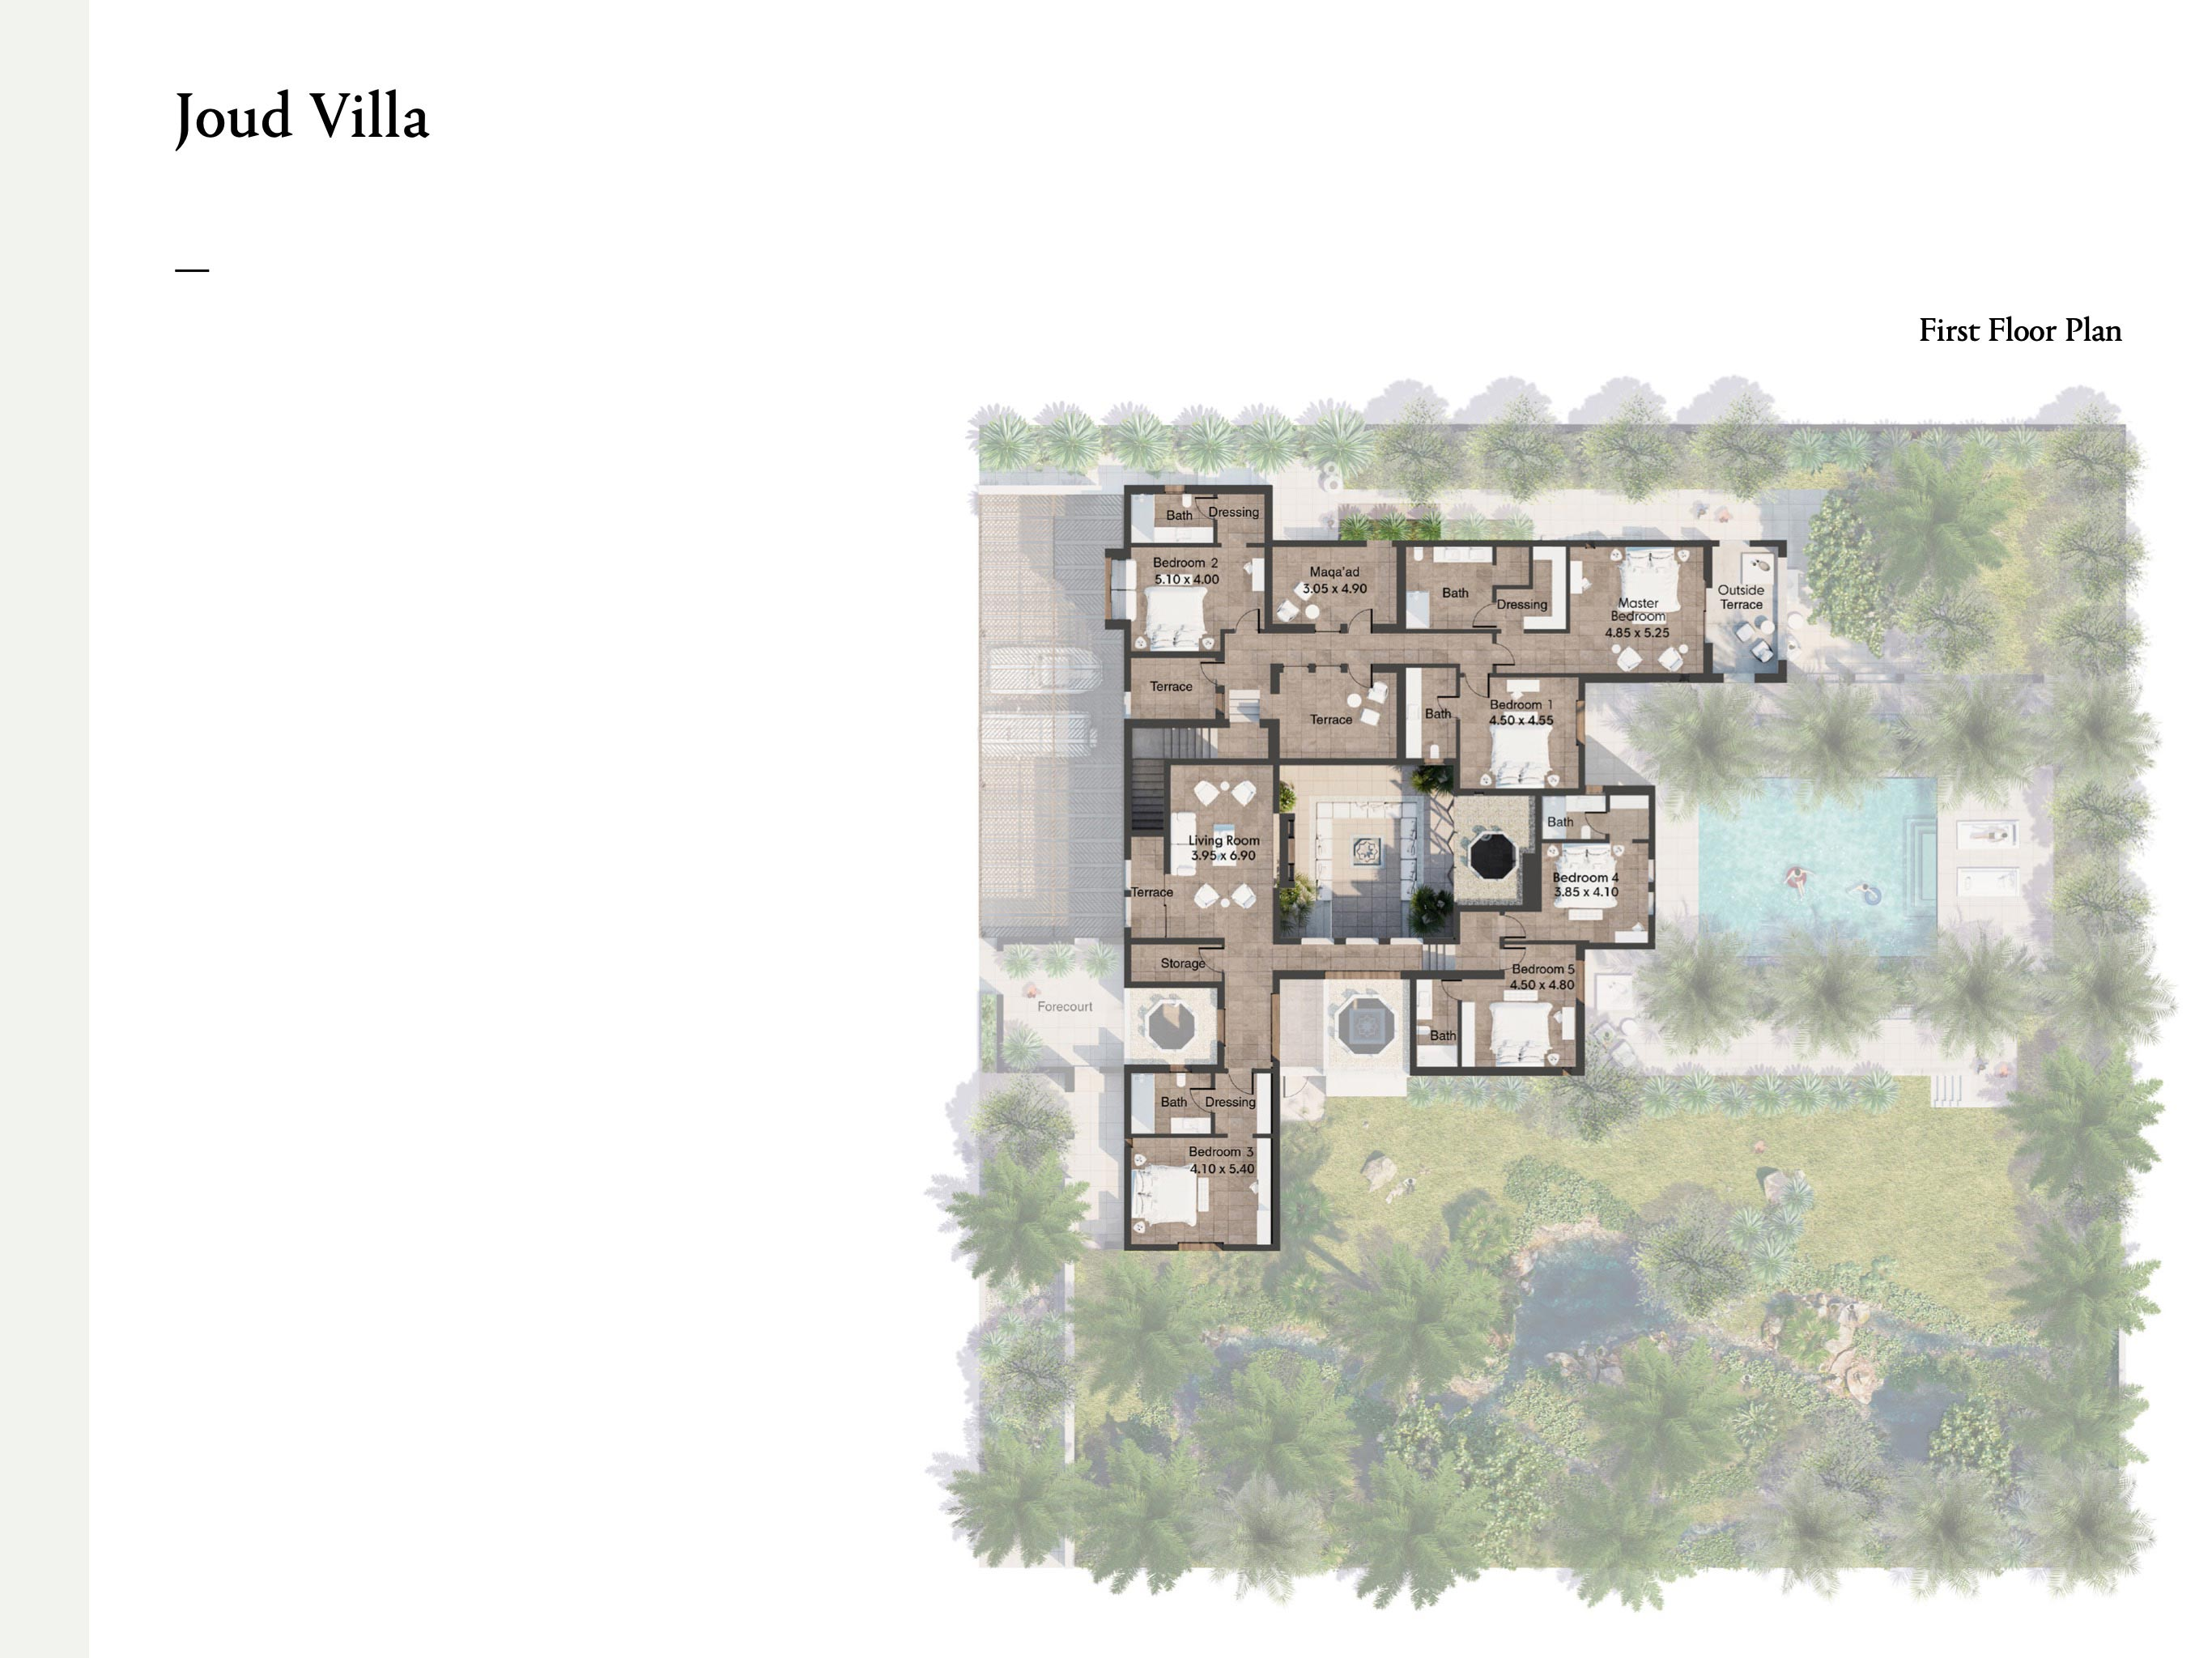 5 Bedroom Joud Villas Size 640 sqm